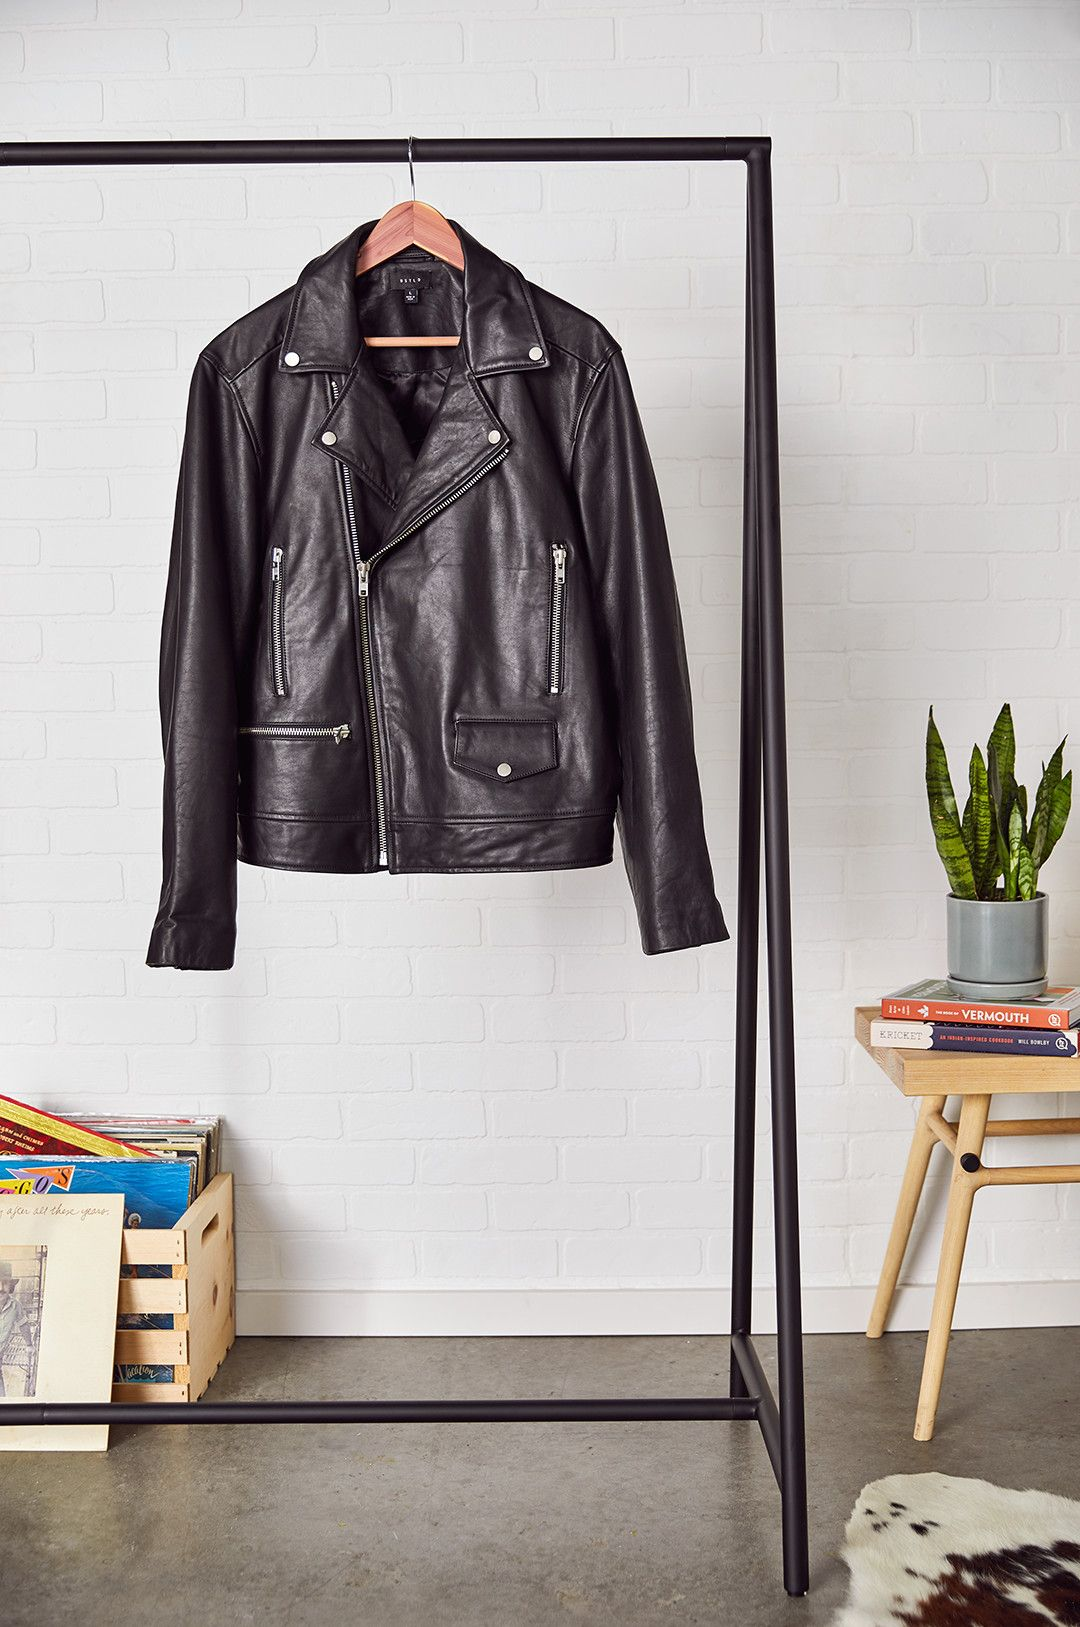 The Affordable Leather Jacket That Looks Like It Costs a Couple Grand